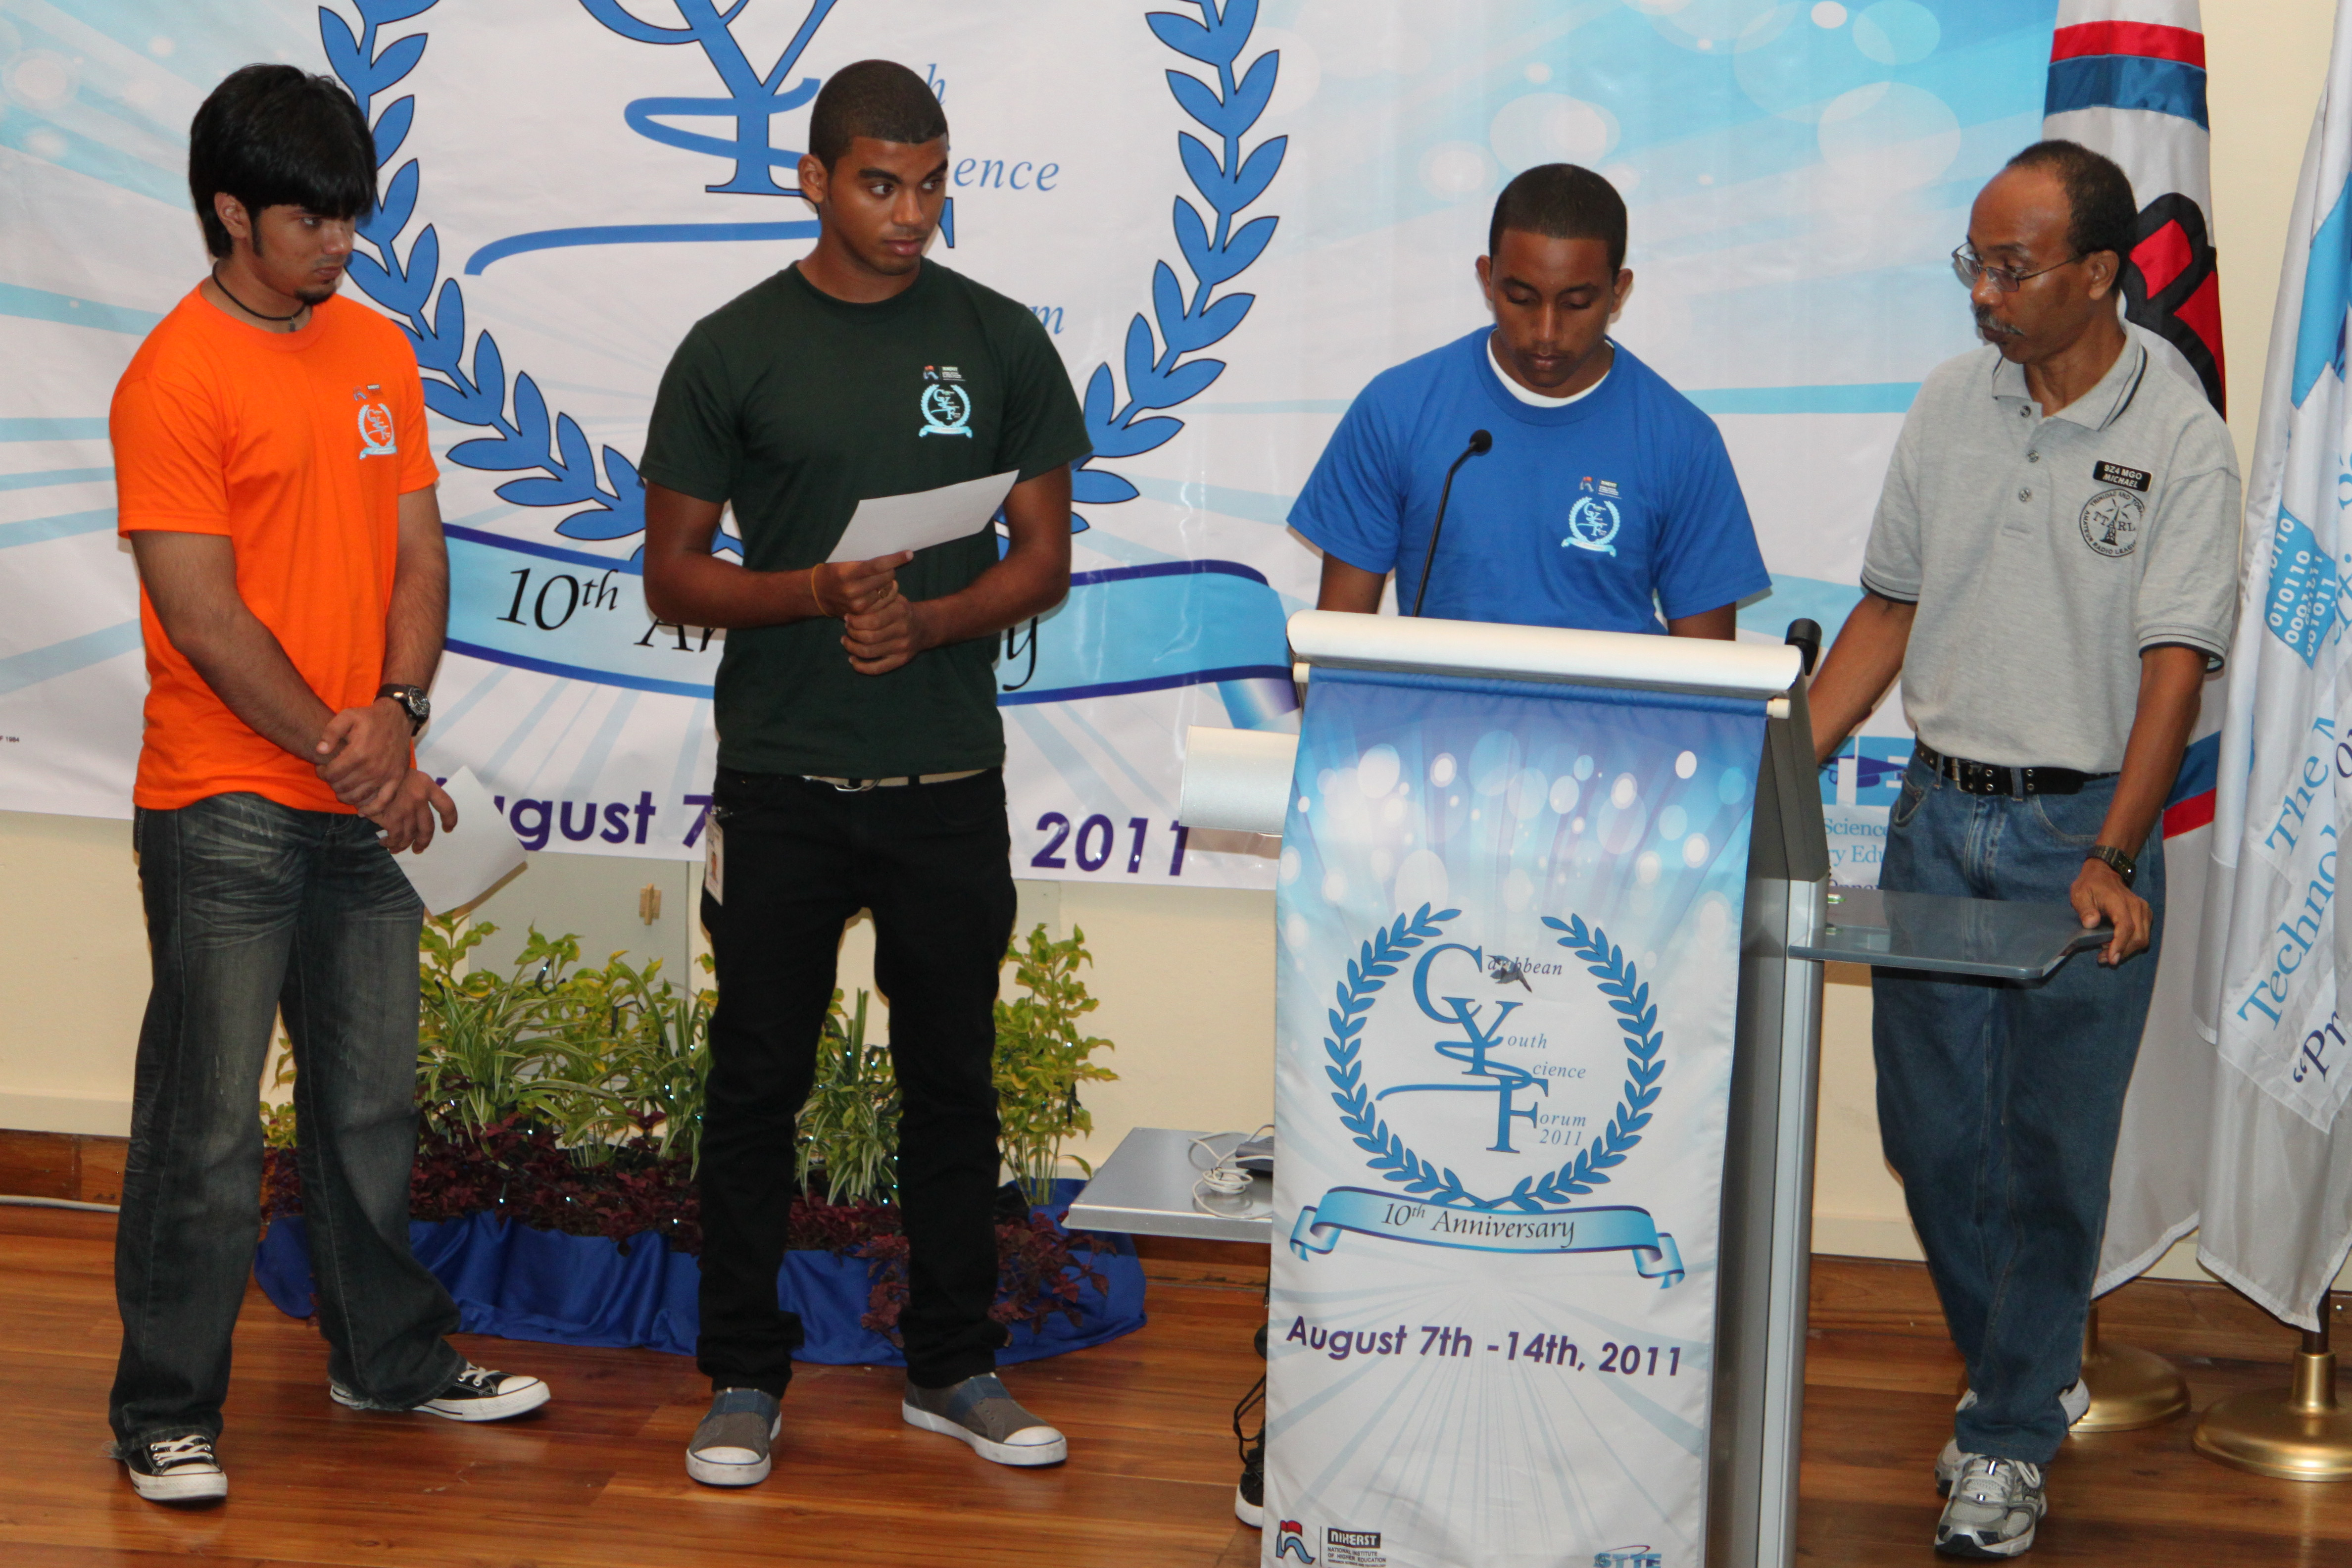 major competition stations ham radio Students asking Satoshi Furukawa their questions. Fromleft to right:  Jonathan Gosyne, Presentation College Chaguanas; Adam Hanna,Queen's Royal  College; ...